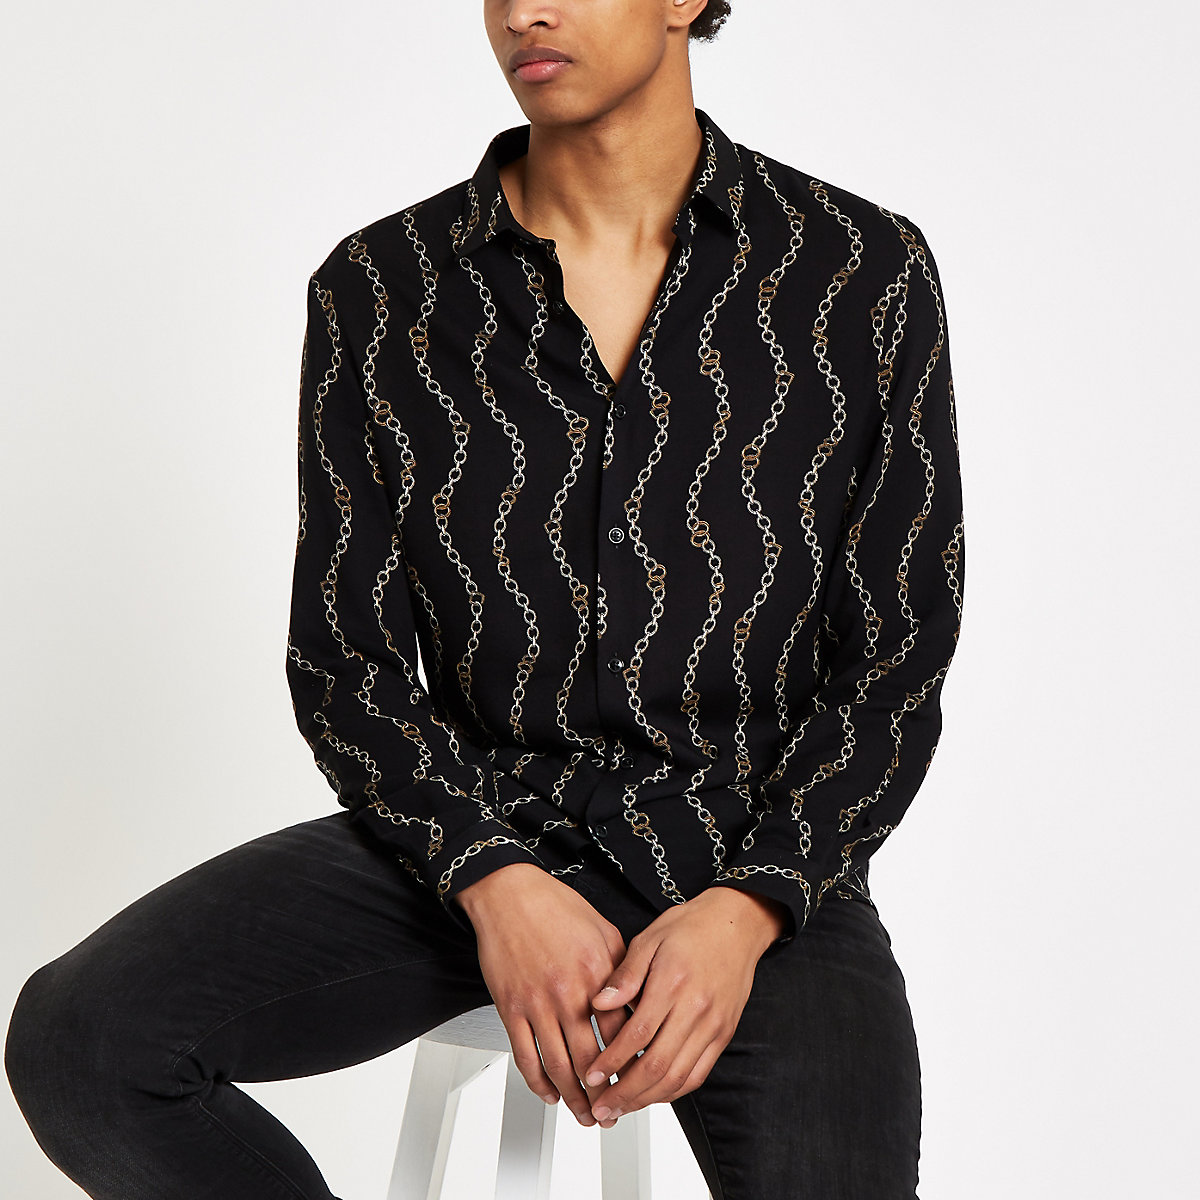 Black chain print long sleeve shirt